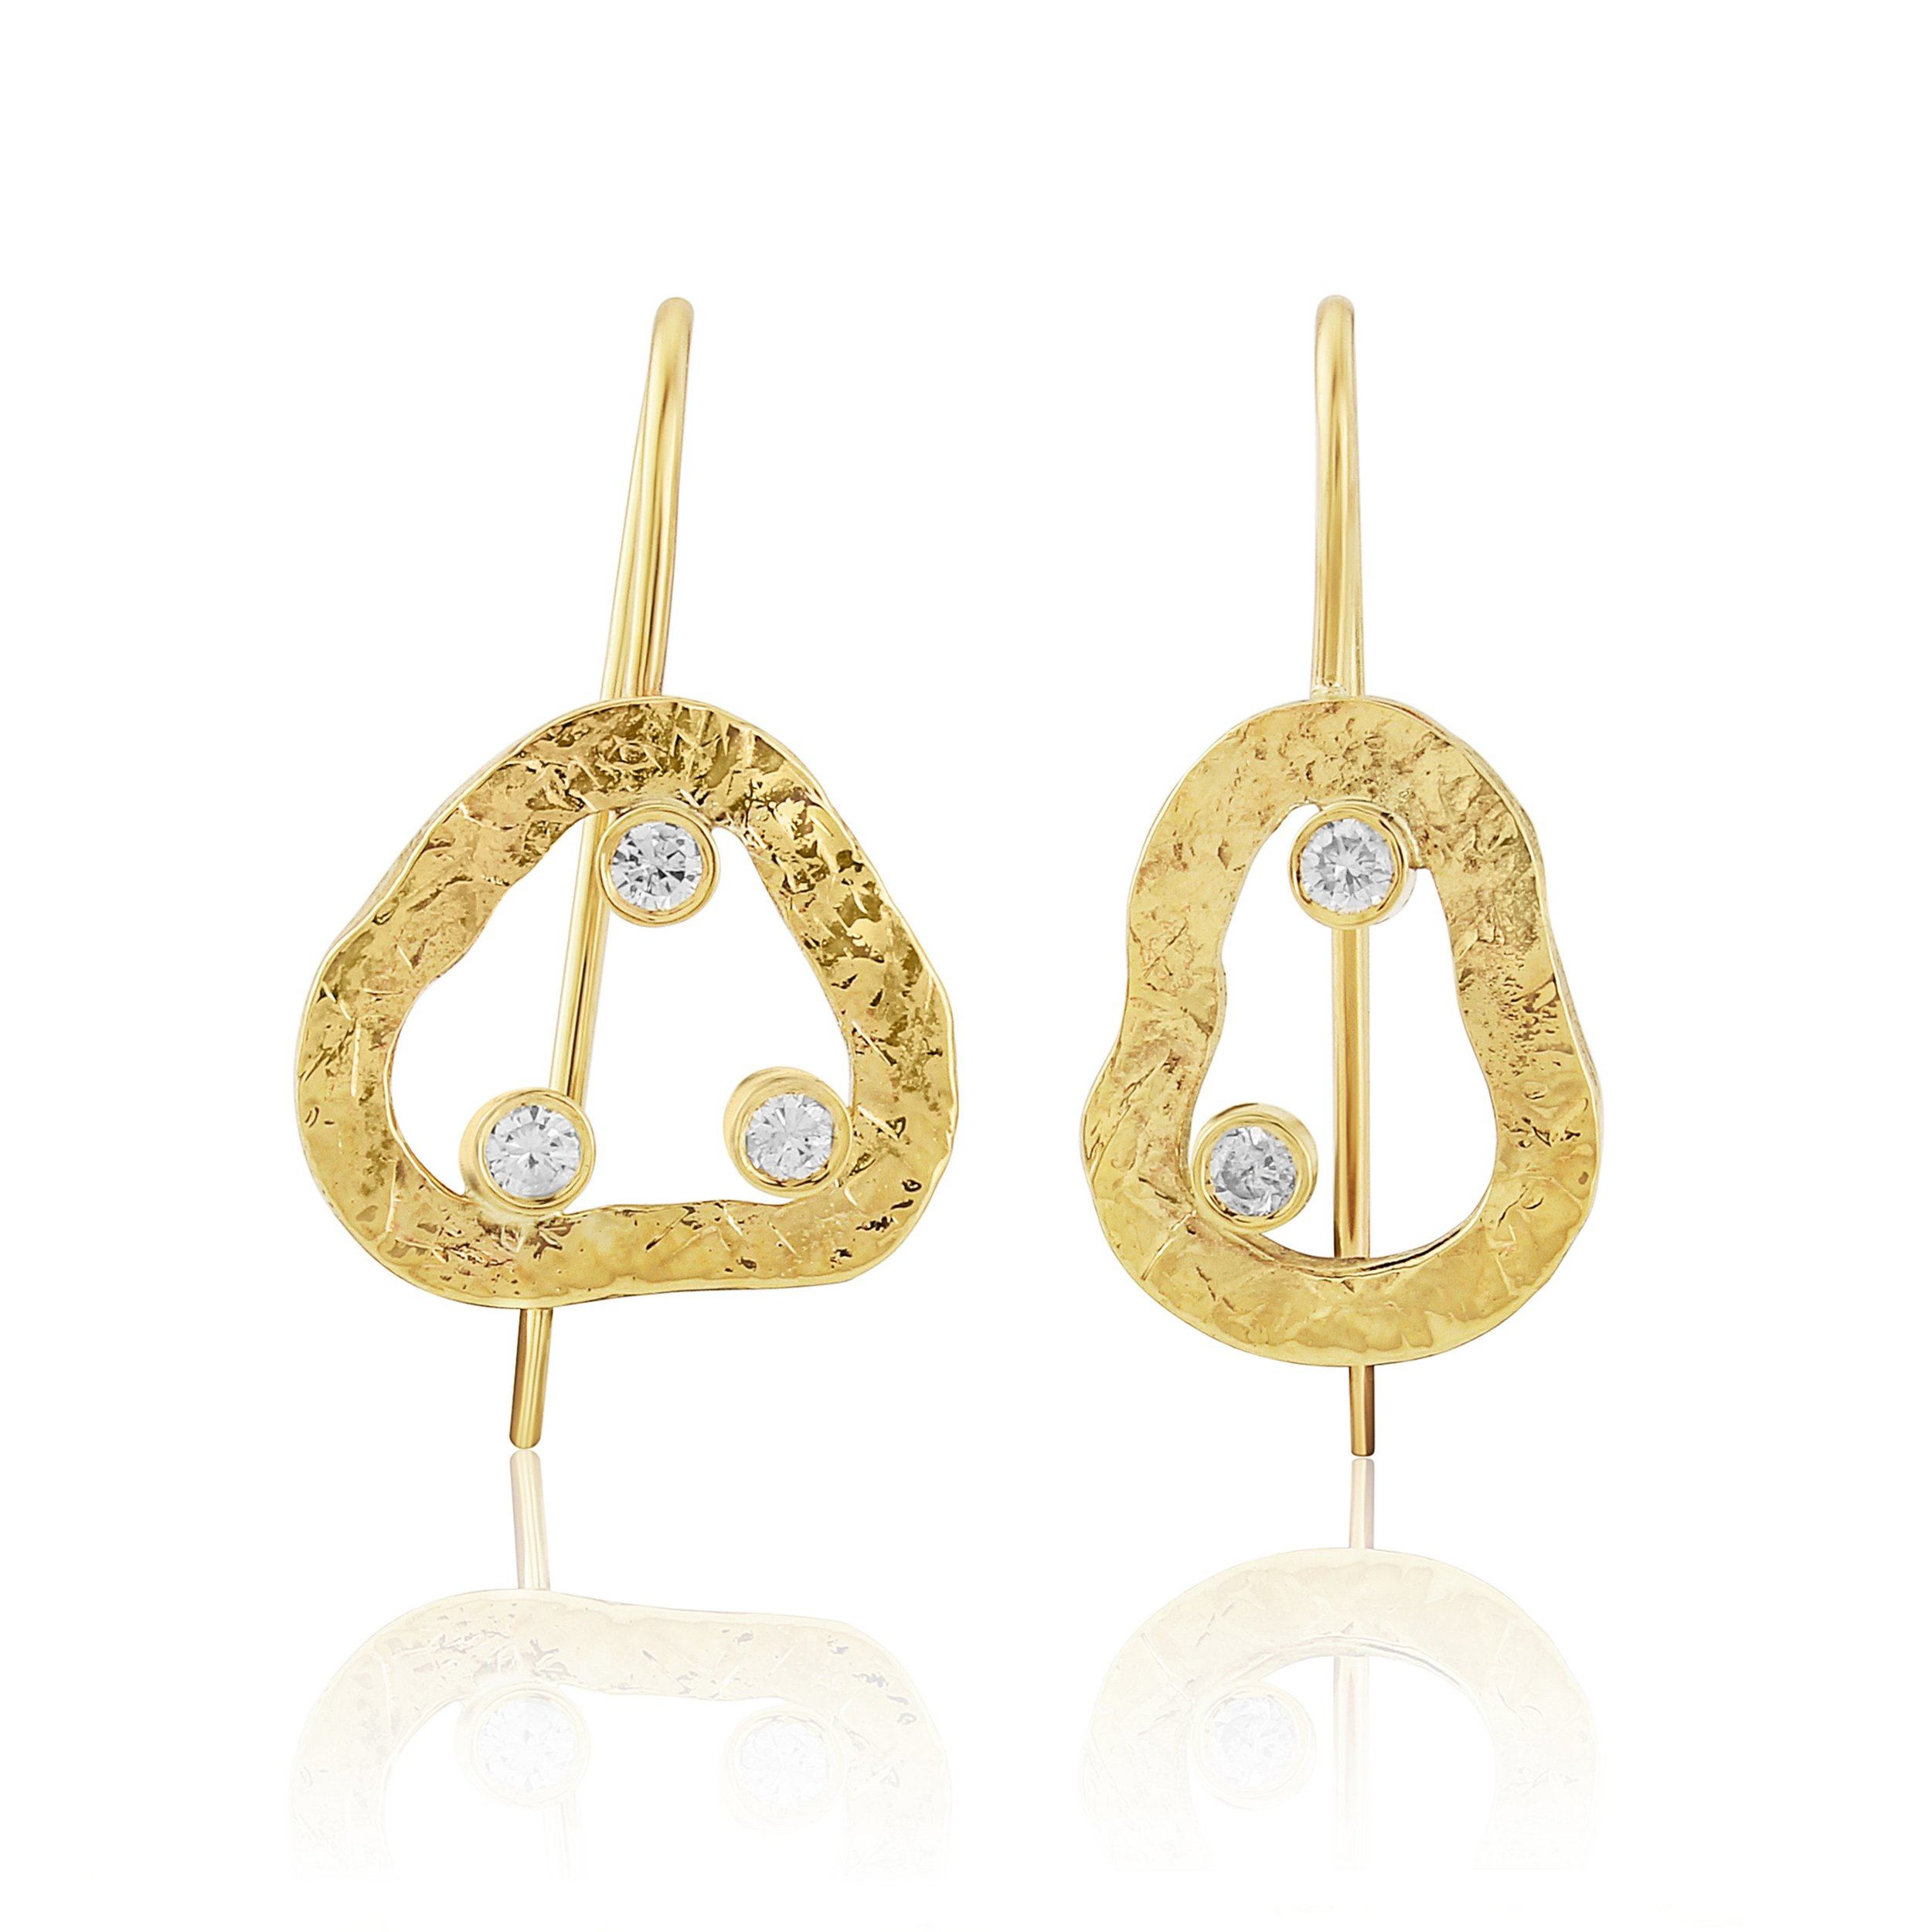 A mismatched pair of gold earrings with diamonds in a textured finish